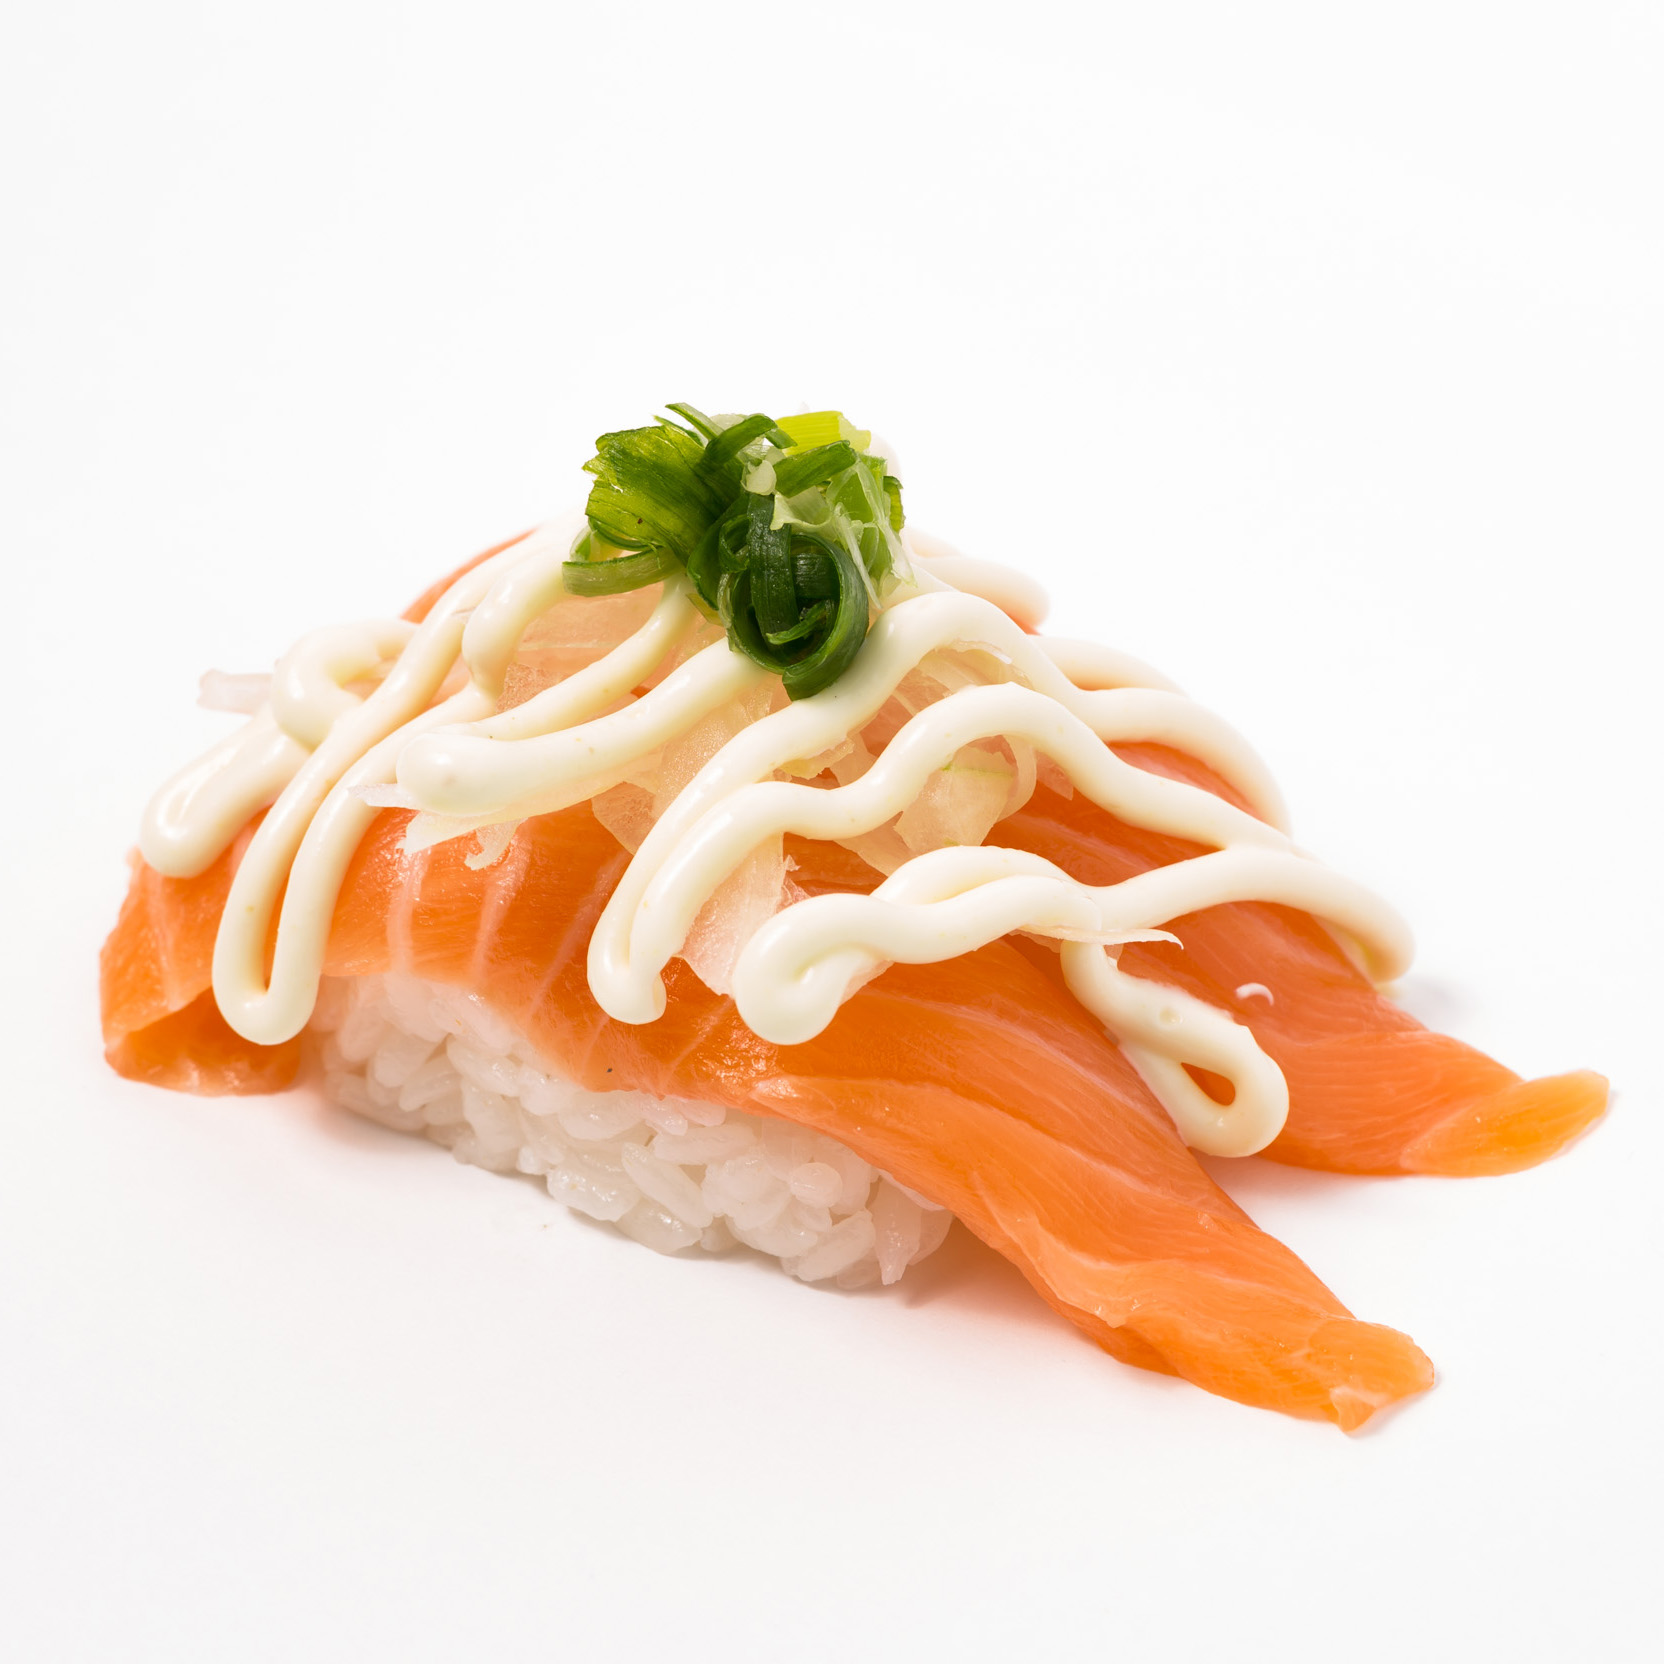 Salmon Onion Nigiri